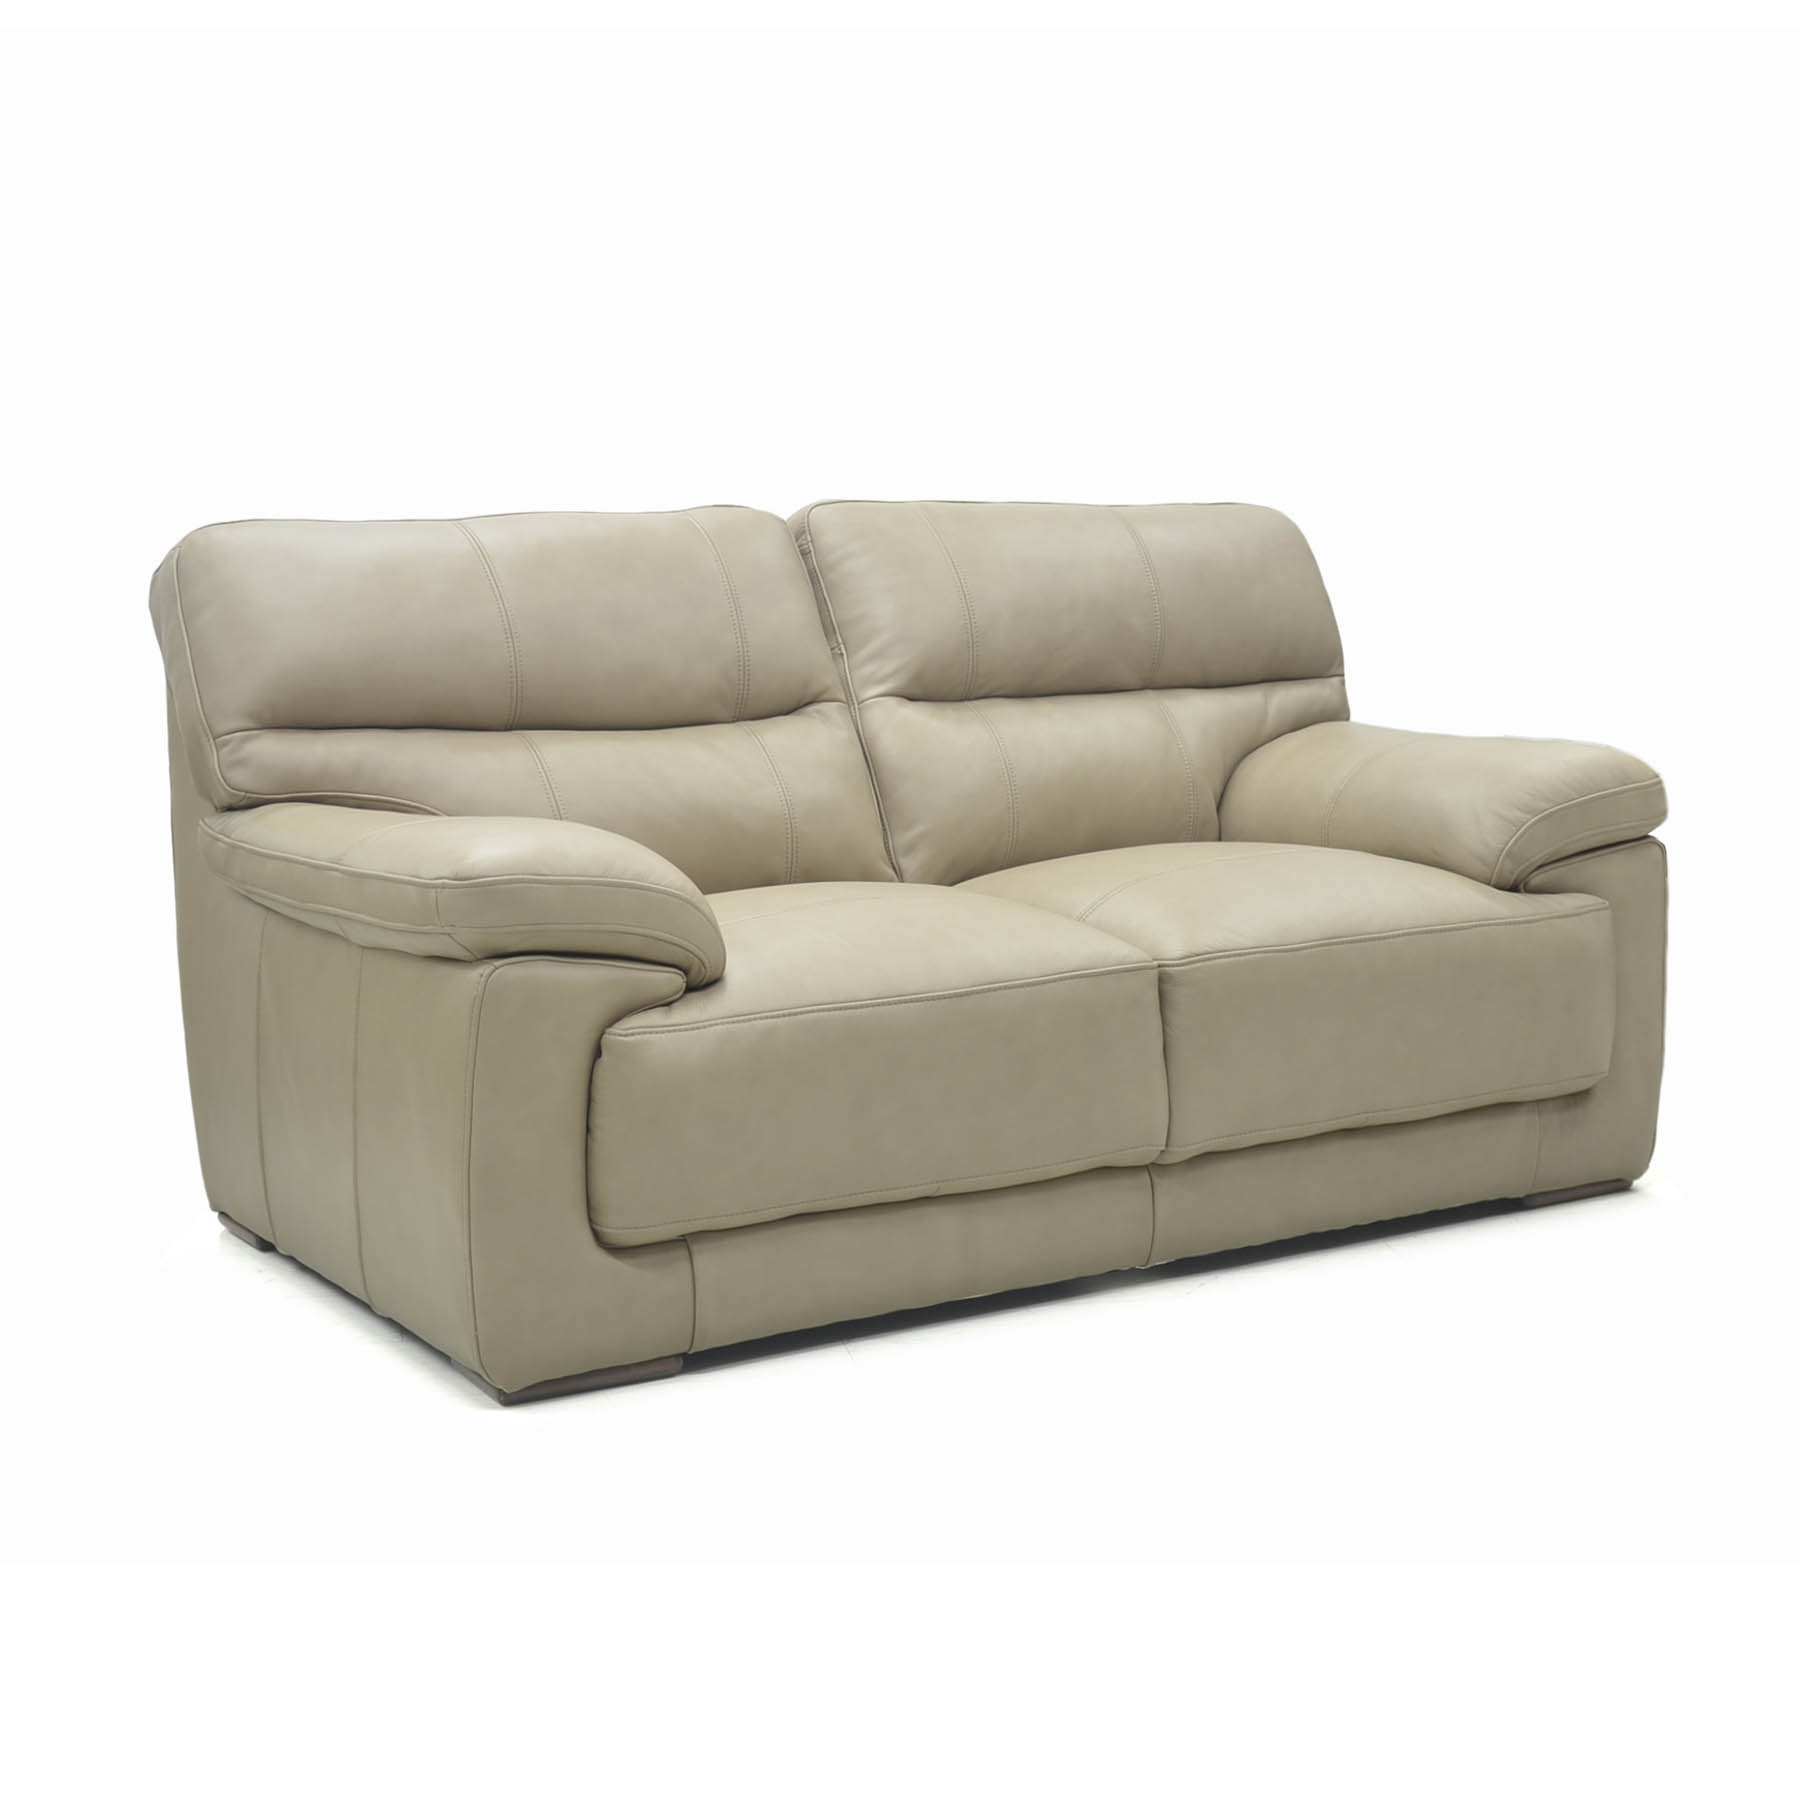 Florence Medium 2 Seater Sofa Pertaining To Florence Medium Sofas (View 3 of 15)